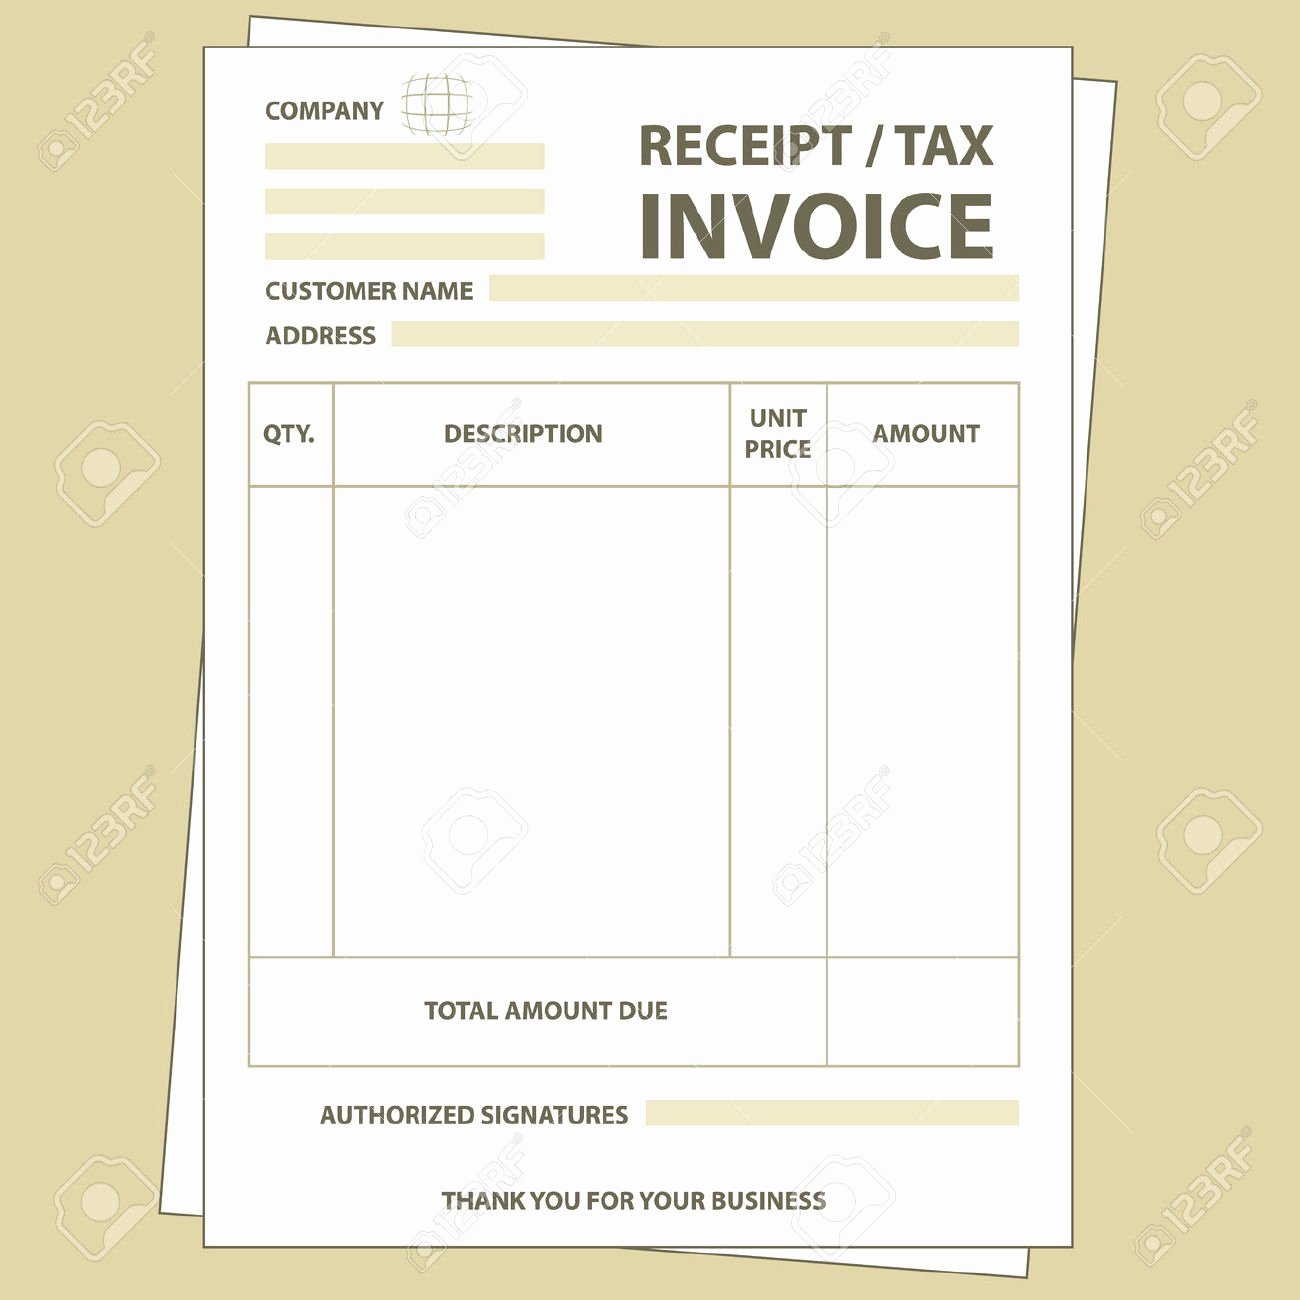 Invoice and Receipt Template Luxury Tax Invoice Receipt Template Invoice Template Ideas